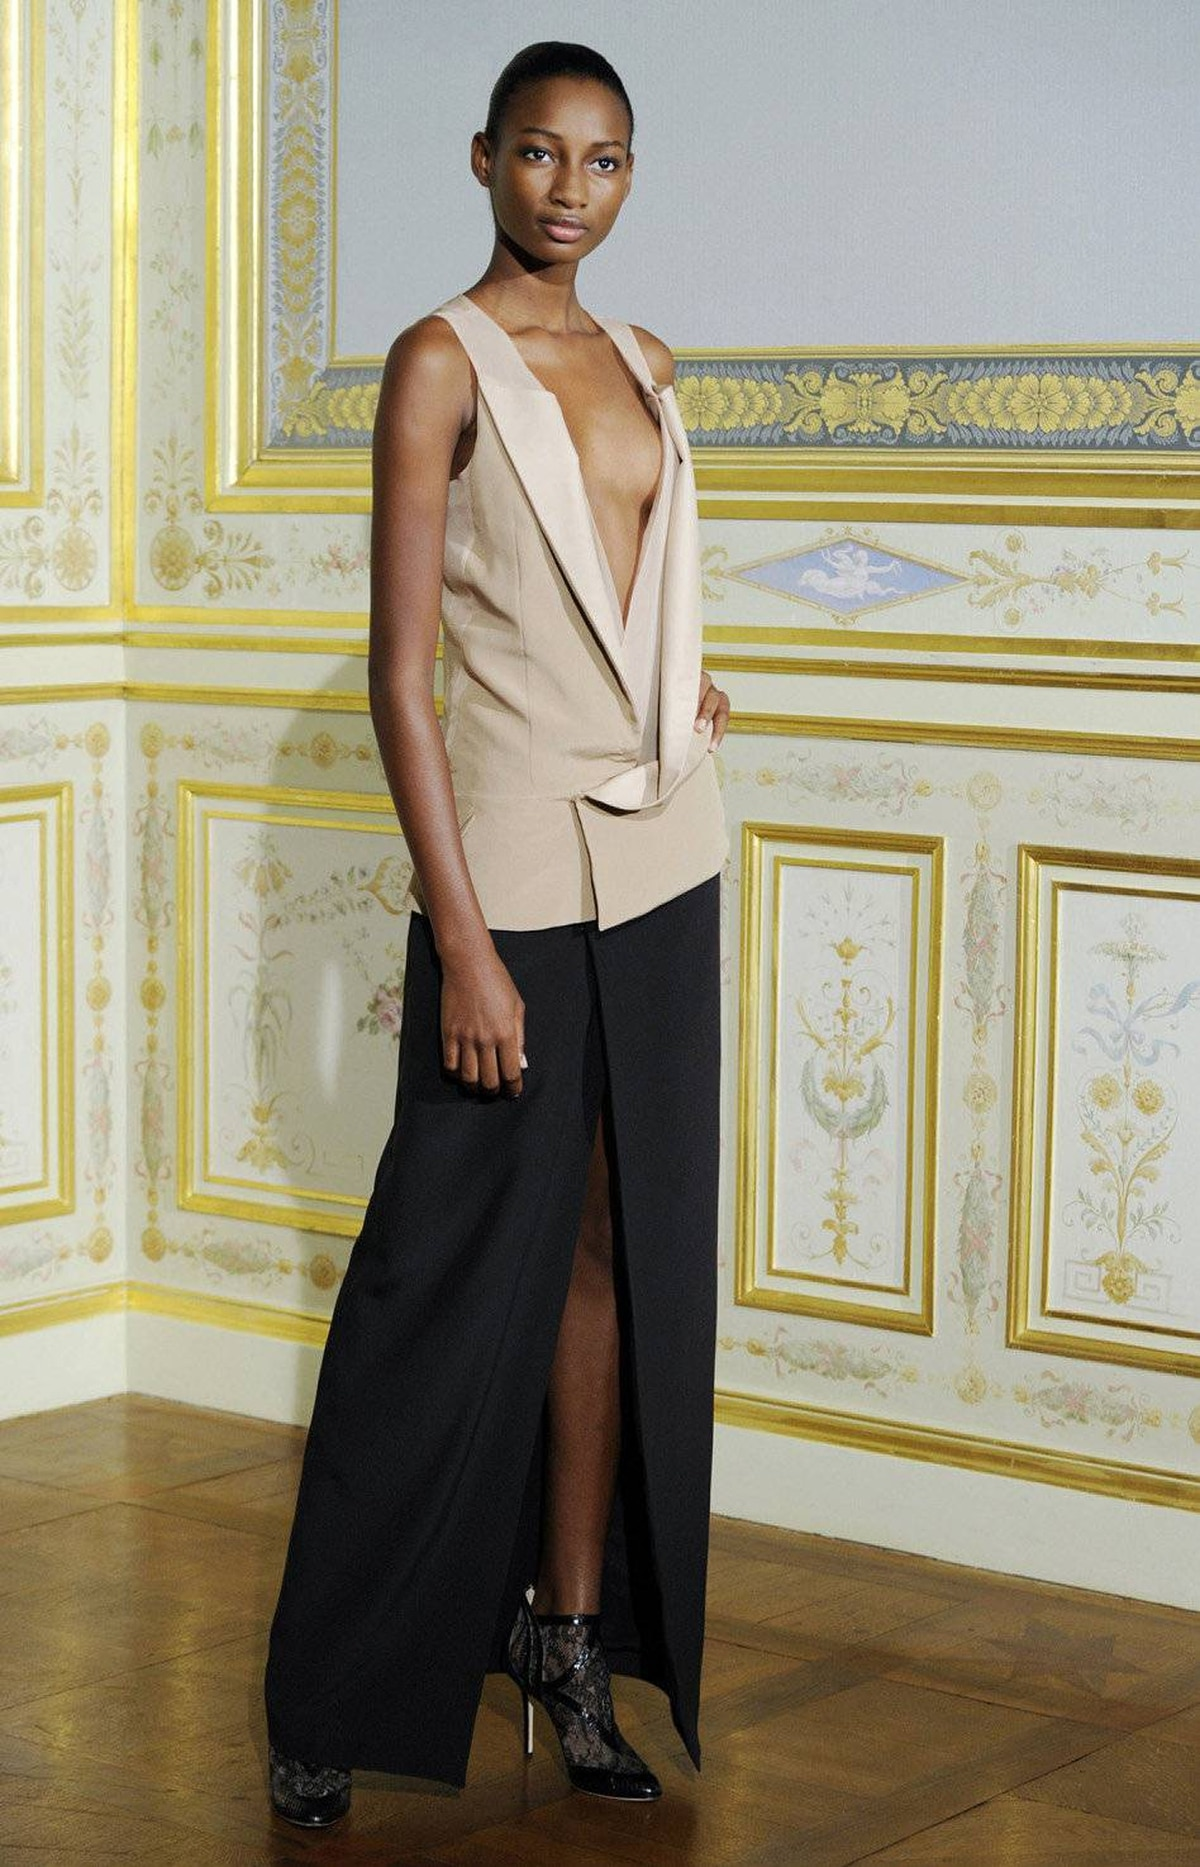 A model presents a creation by French fashion designer Anne Valerie Hash as part of her Haute Couture Fall-Winter 2011/2012 fashion show in Paris July 4, 2011.